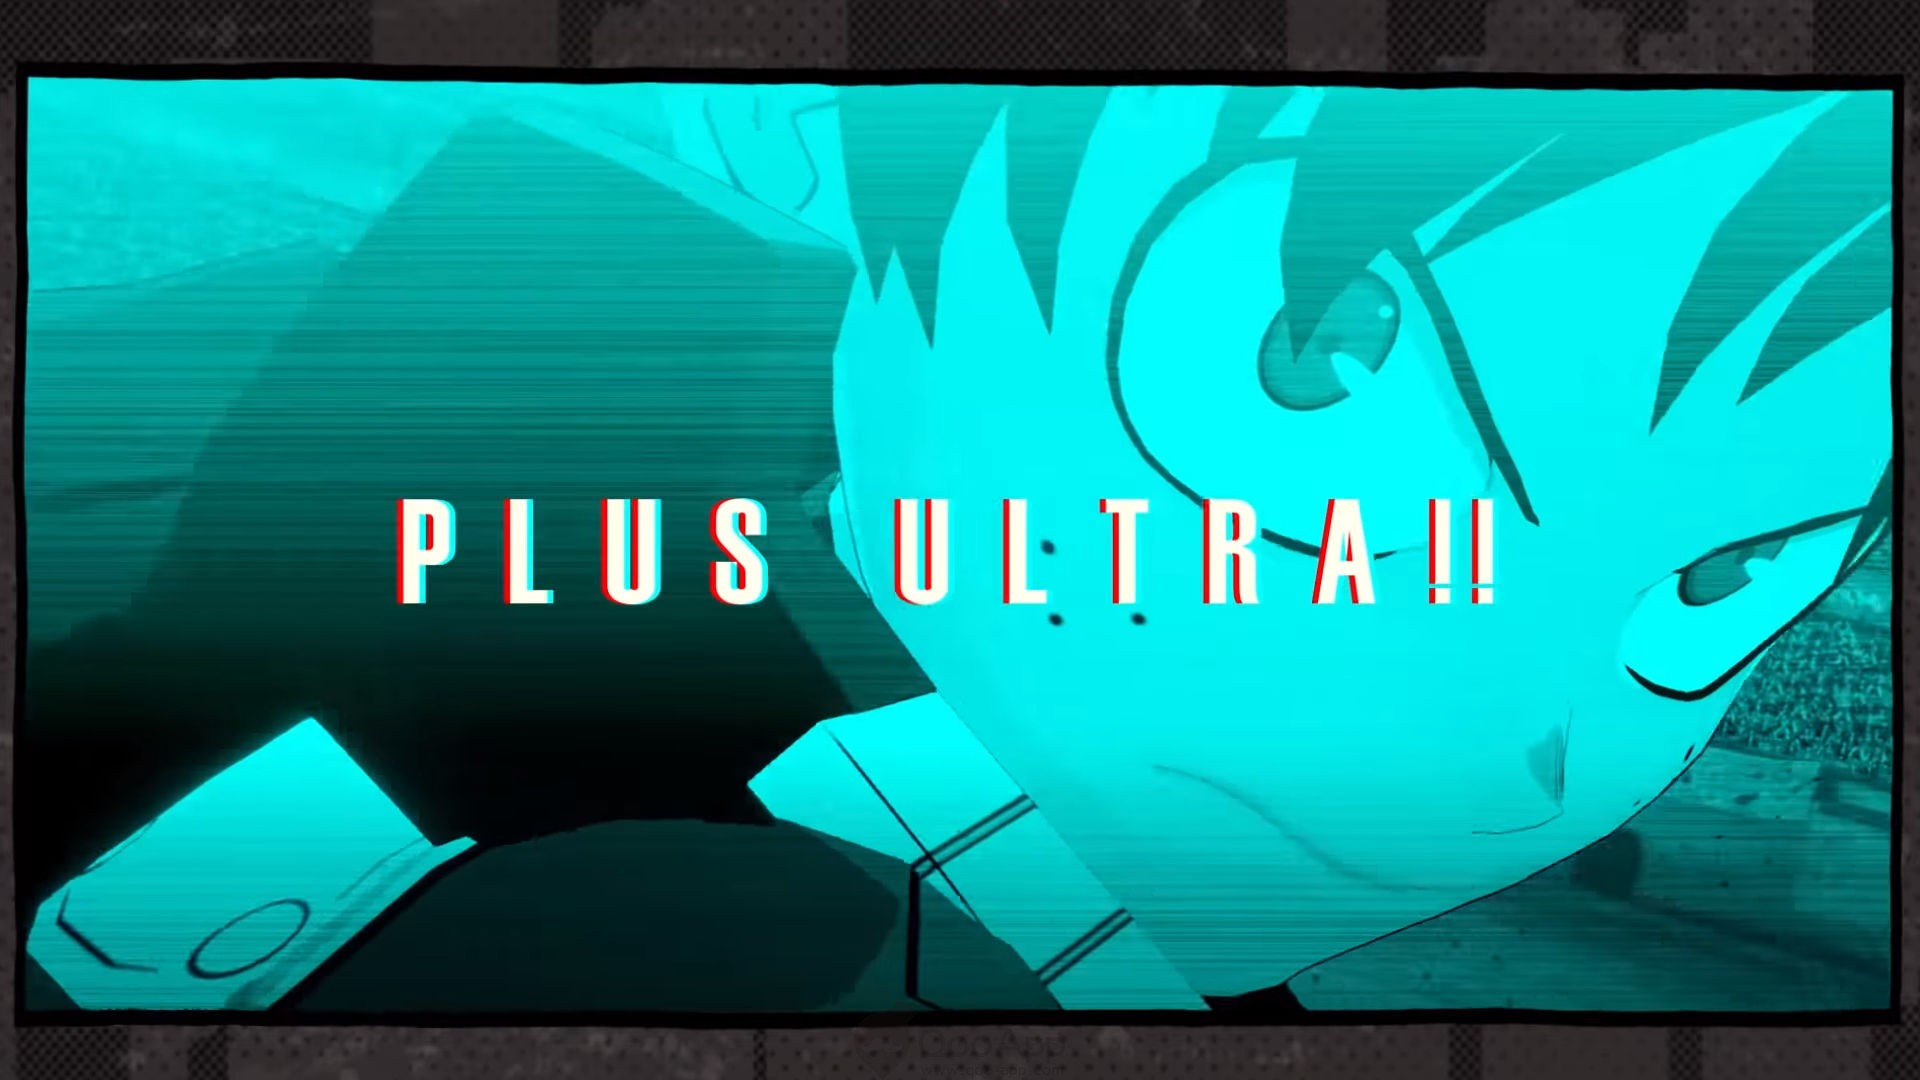 My Hero Academia Characters Overview Trailer Released!